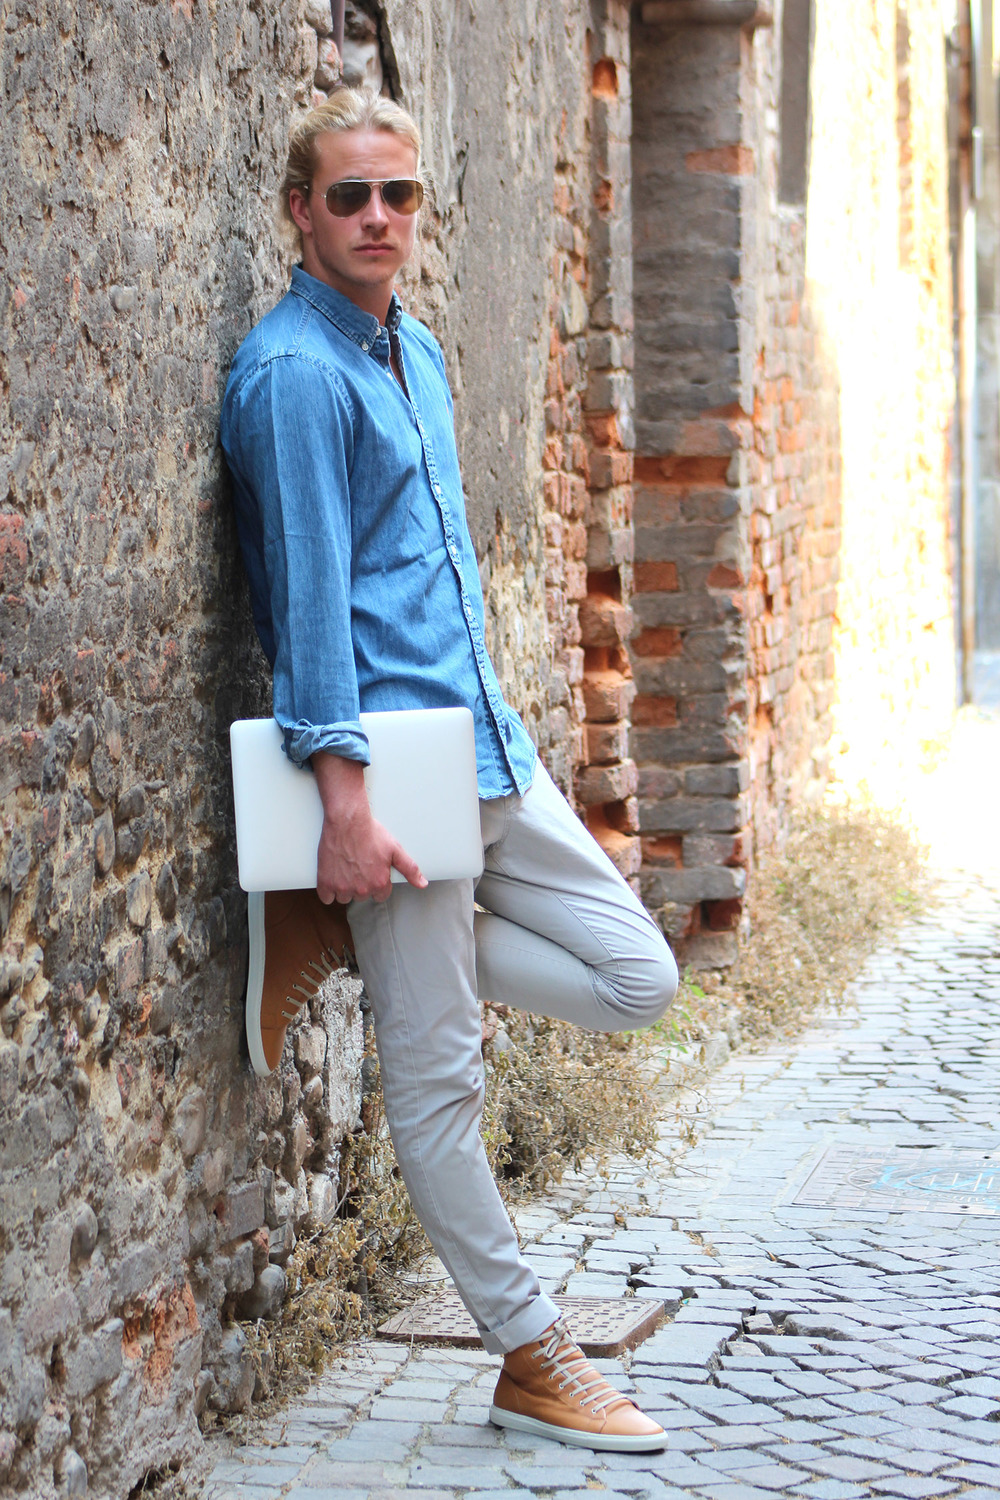 Theo Blix Mens Fashion Blog, Polo Ralph Lauren, Filippa K chinos, Torlasco Shoes, blogger, blogg, mote for menn, herreklær, vaffeljakke menn, klær menn, mens fashion, jakker menn, street style, male bloggers, men's style bloggers, menswear bloggers, mens fashion bloggers, boy bloggers, best male bloggers